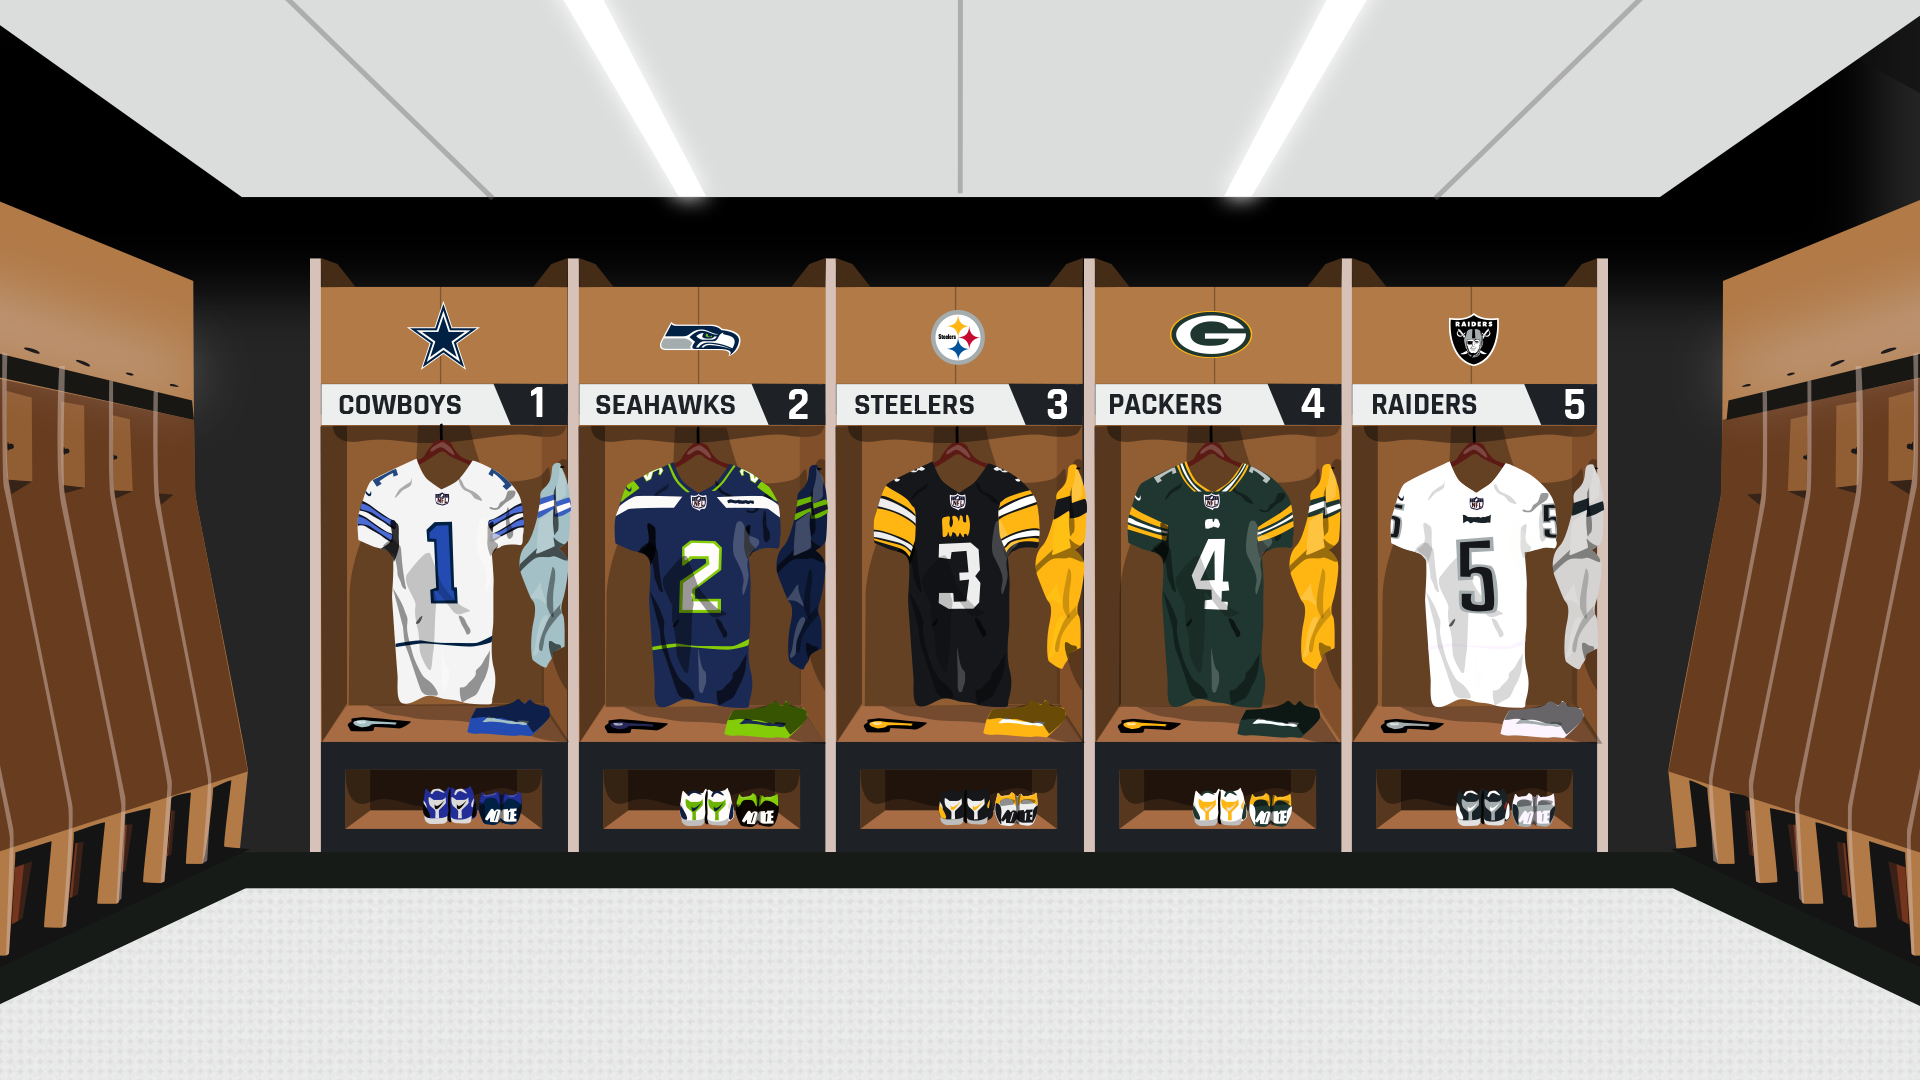 new concept aefb2 49183 NFL uniform rankings: The best and worst looks in the league ...